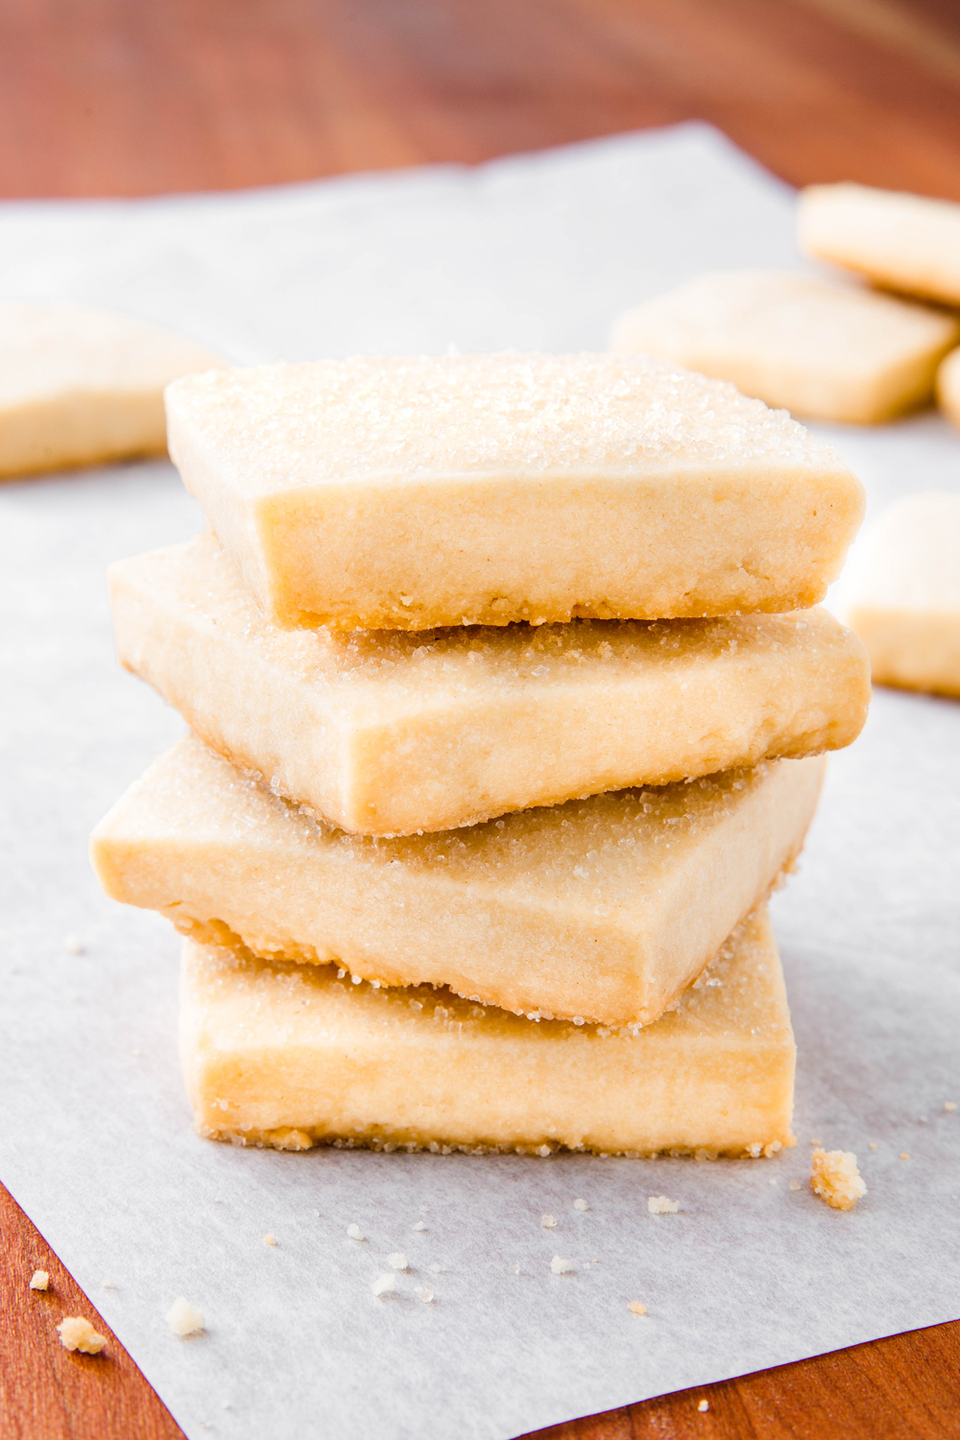 """<p>Homemade > cookies from a tin. </p><p>Get the recipe from <a href=""""https://www.delish.com/cooking/recipe-ideas/a24687595/shortbread-cookie-recipe/"""" rel=""""nofollow noopener"""" target=""""_blank"""" data-ylk=""""slk:Delish"""" class=""""link rapid-noclick-resp"""">Delish</a>. </p>"""